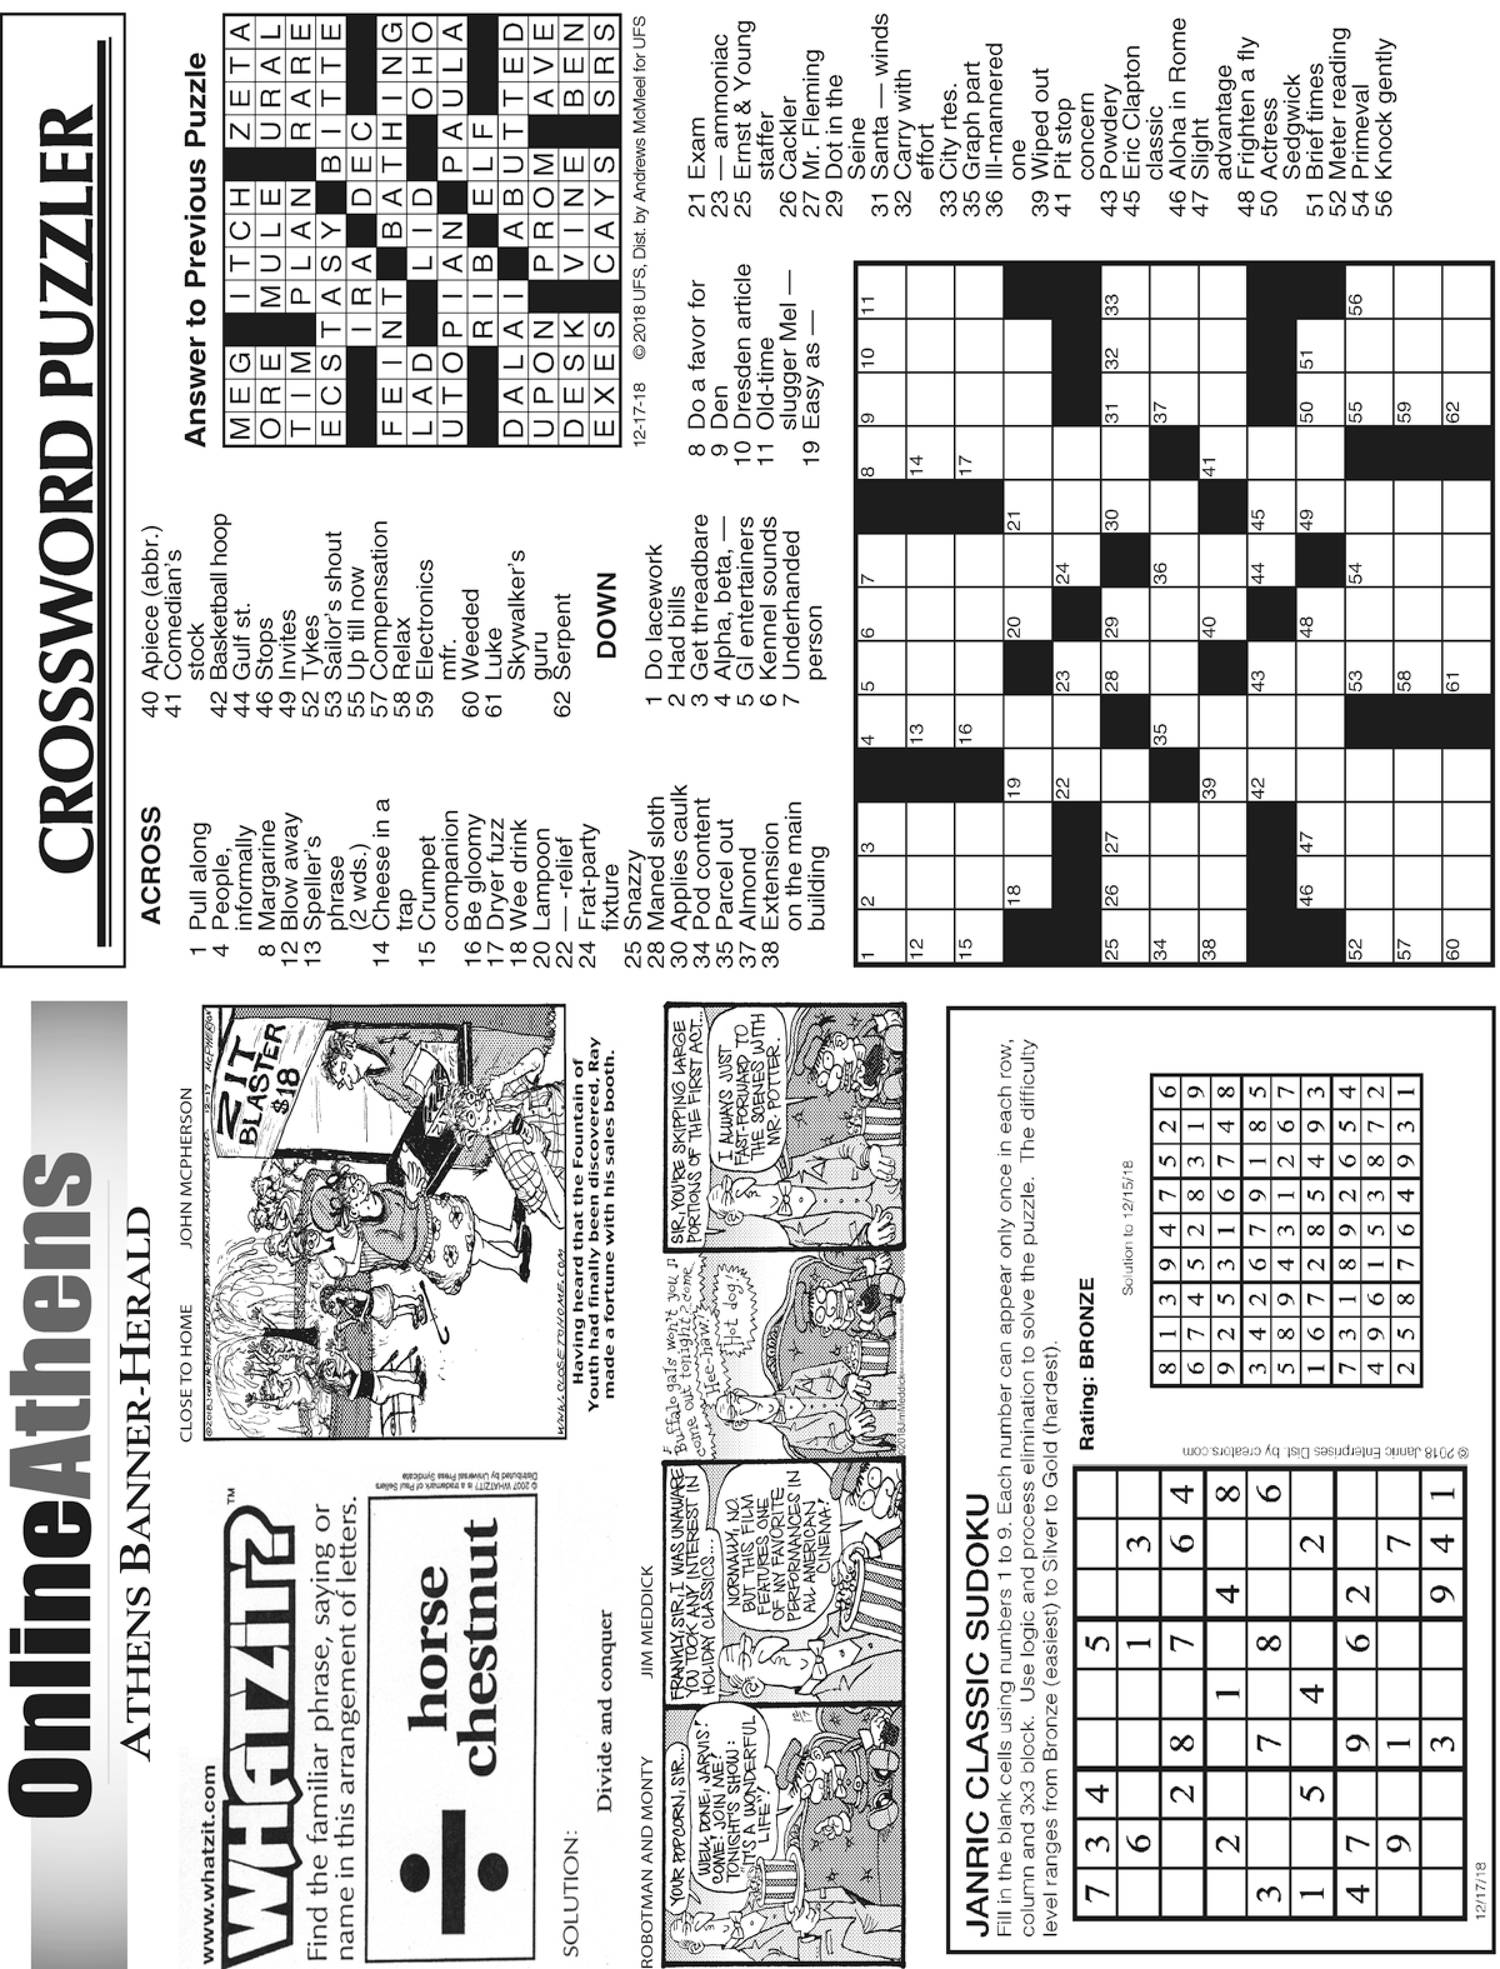 Underhanded Crossword Lasopaama